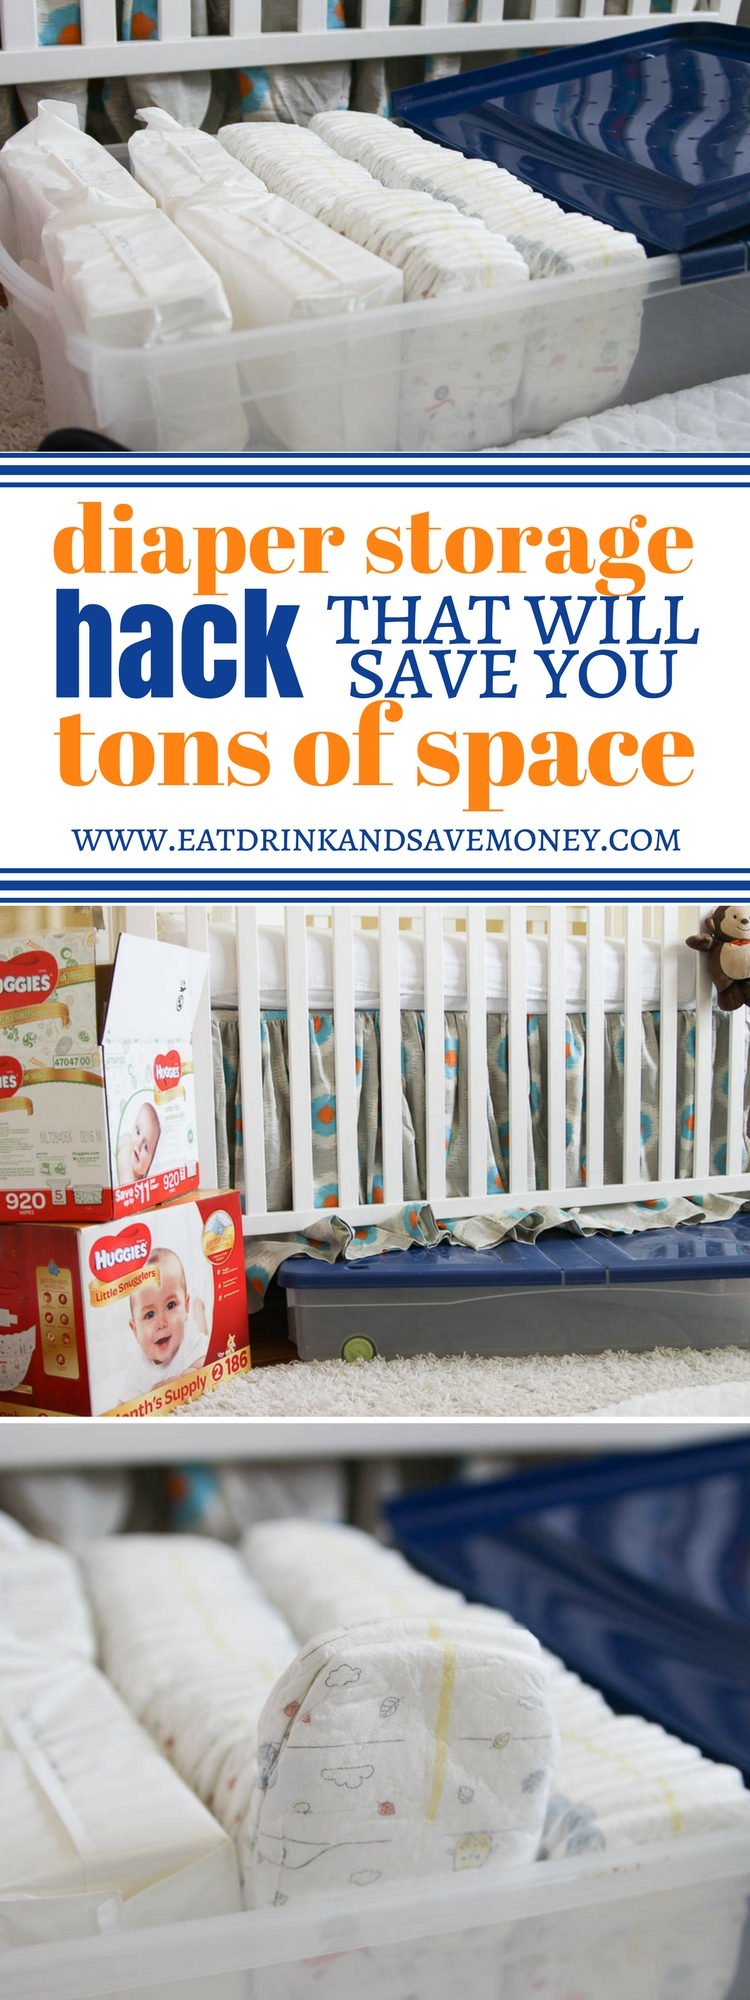 New baby hack_ diaper storage hack with will save you tons of space. Nursery ideas. Easy nursery storage solutions.